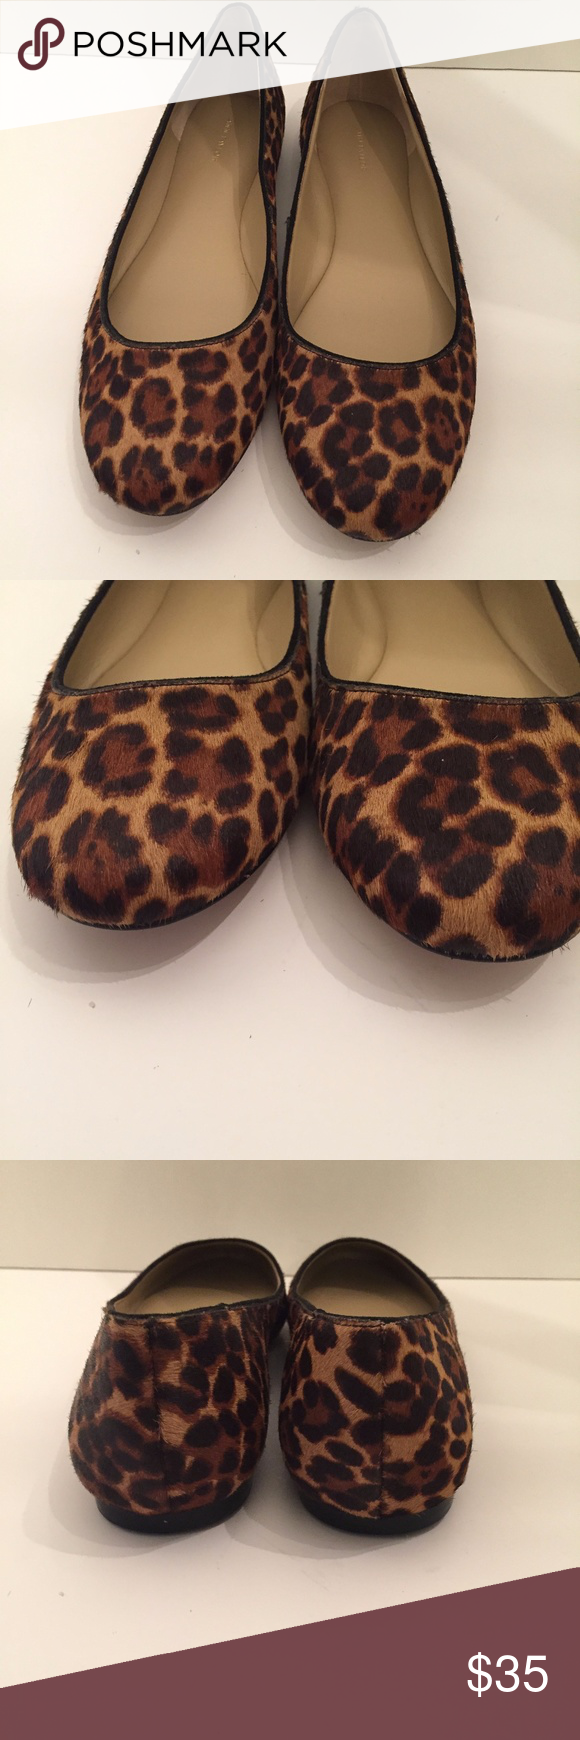 WOMENS ANN TAYLOR FUR FLATS NEW SZ 9 BRAND NEW NO BOX  ANN TAYLOR FUR CHEETAH PRINT FLATS   SIZE 9  MAKE SURE TO CHECK OUT MY OTHER LISTINGS.  FEEL FREE TO ASK QUESTIONS  BIN-3 Ann Taylor Shoes Flats & Loafers